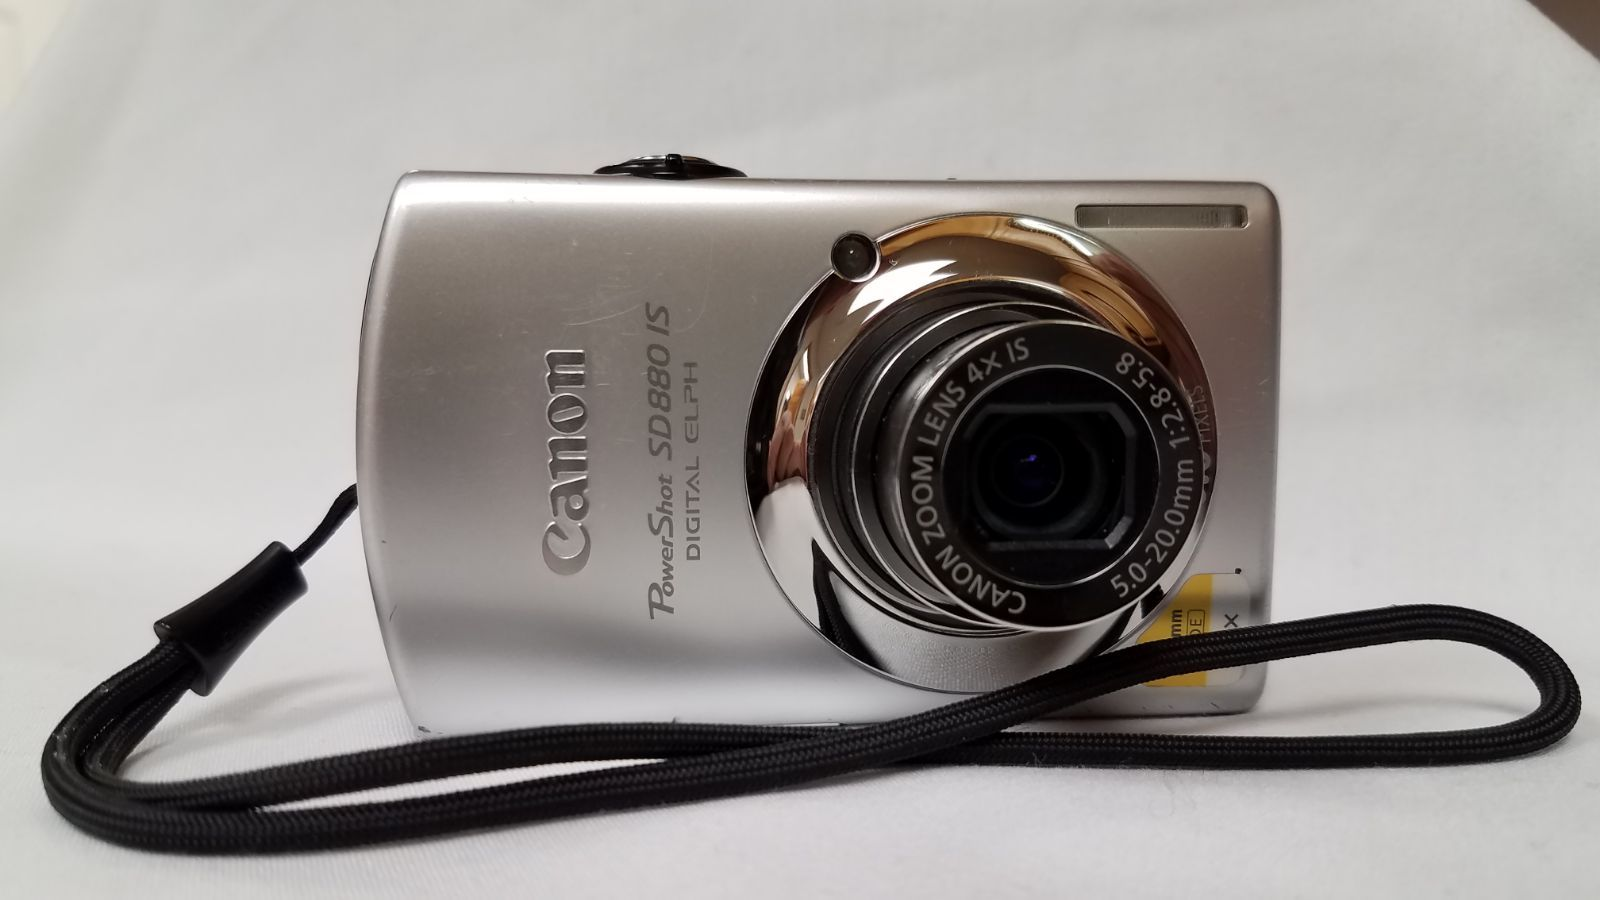 Canon Powershot Digital Camera In Very Good Used Condition Takes Beautiful 10mp Photos With It S 4x O Powershot Canon Powershot Canon Powershot Digital Camera